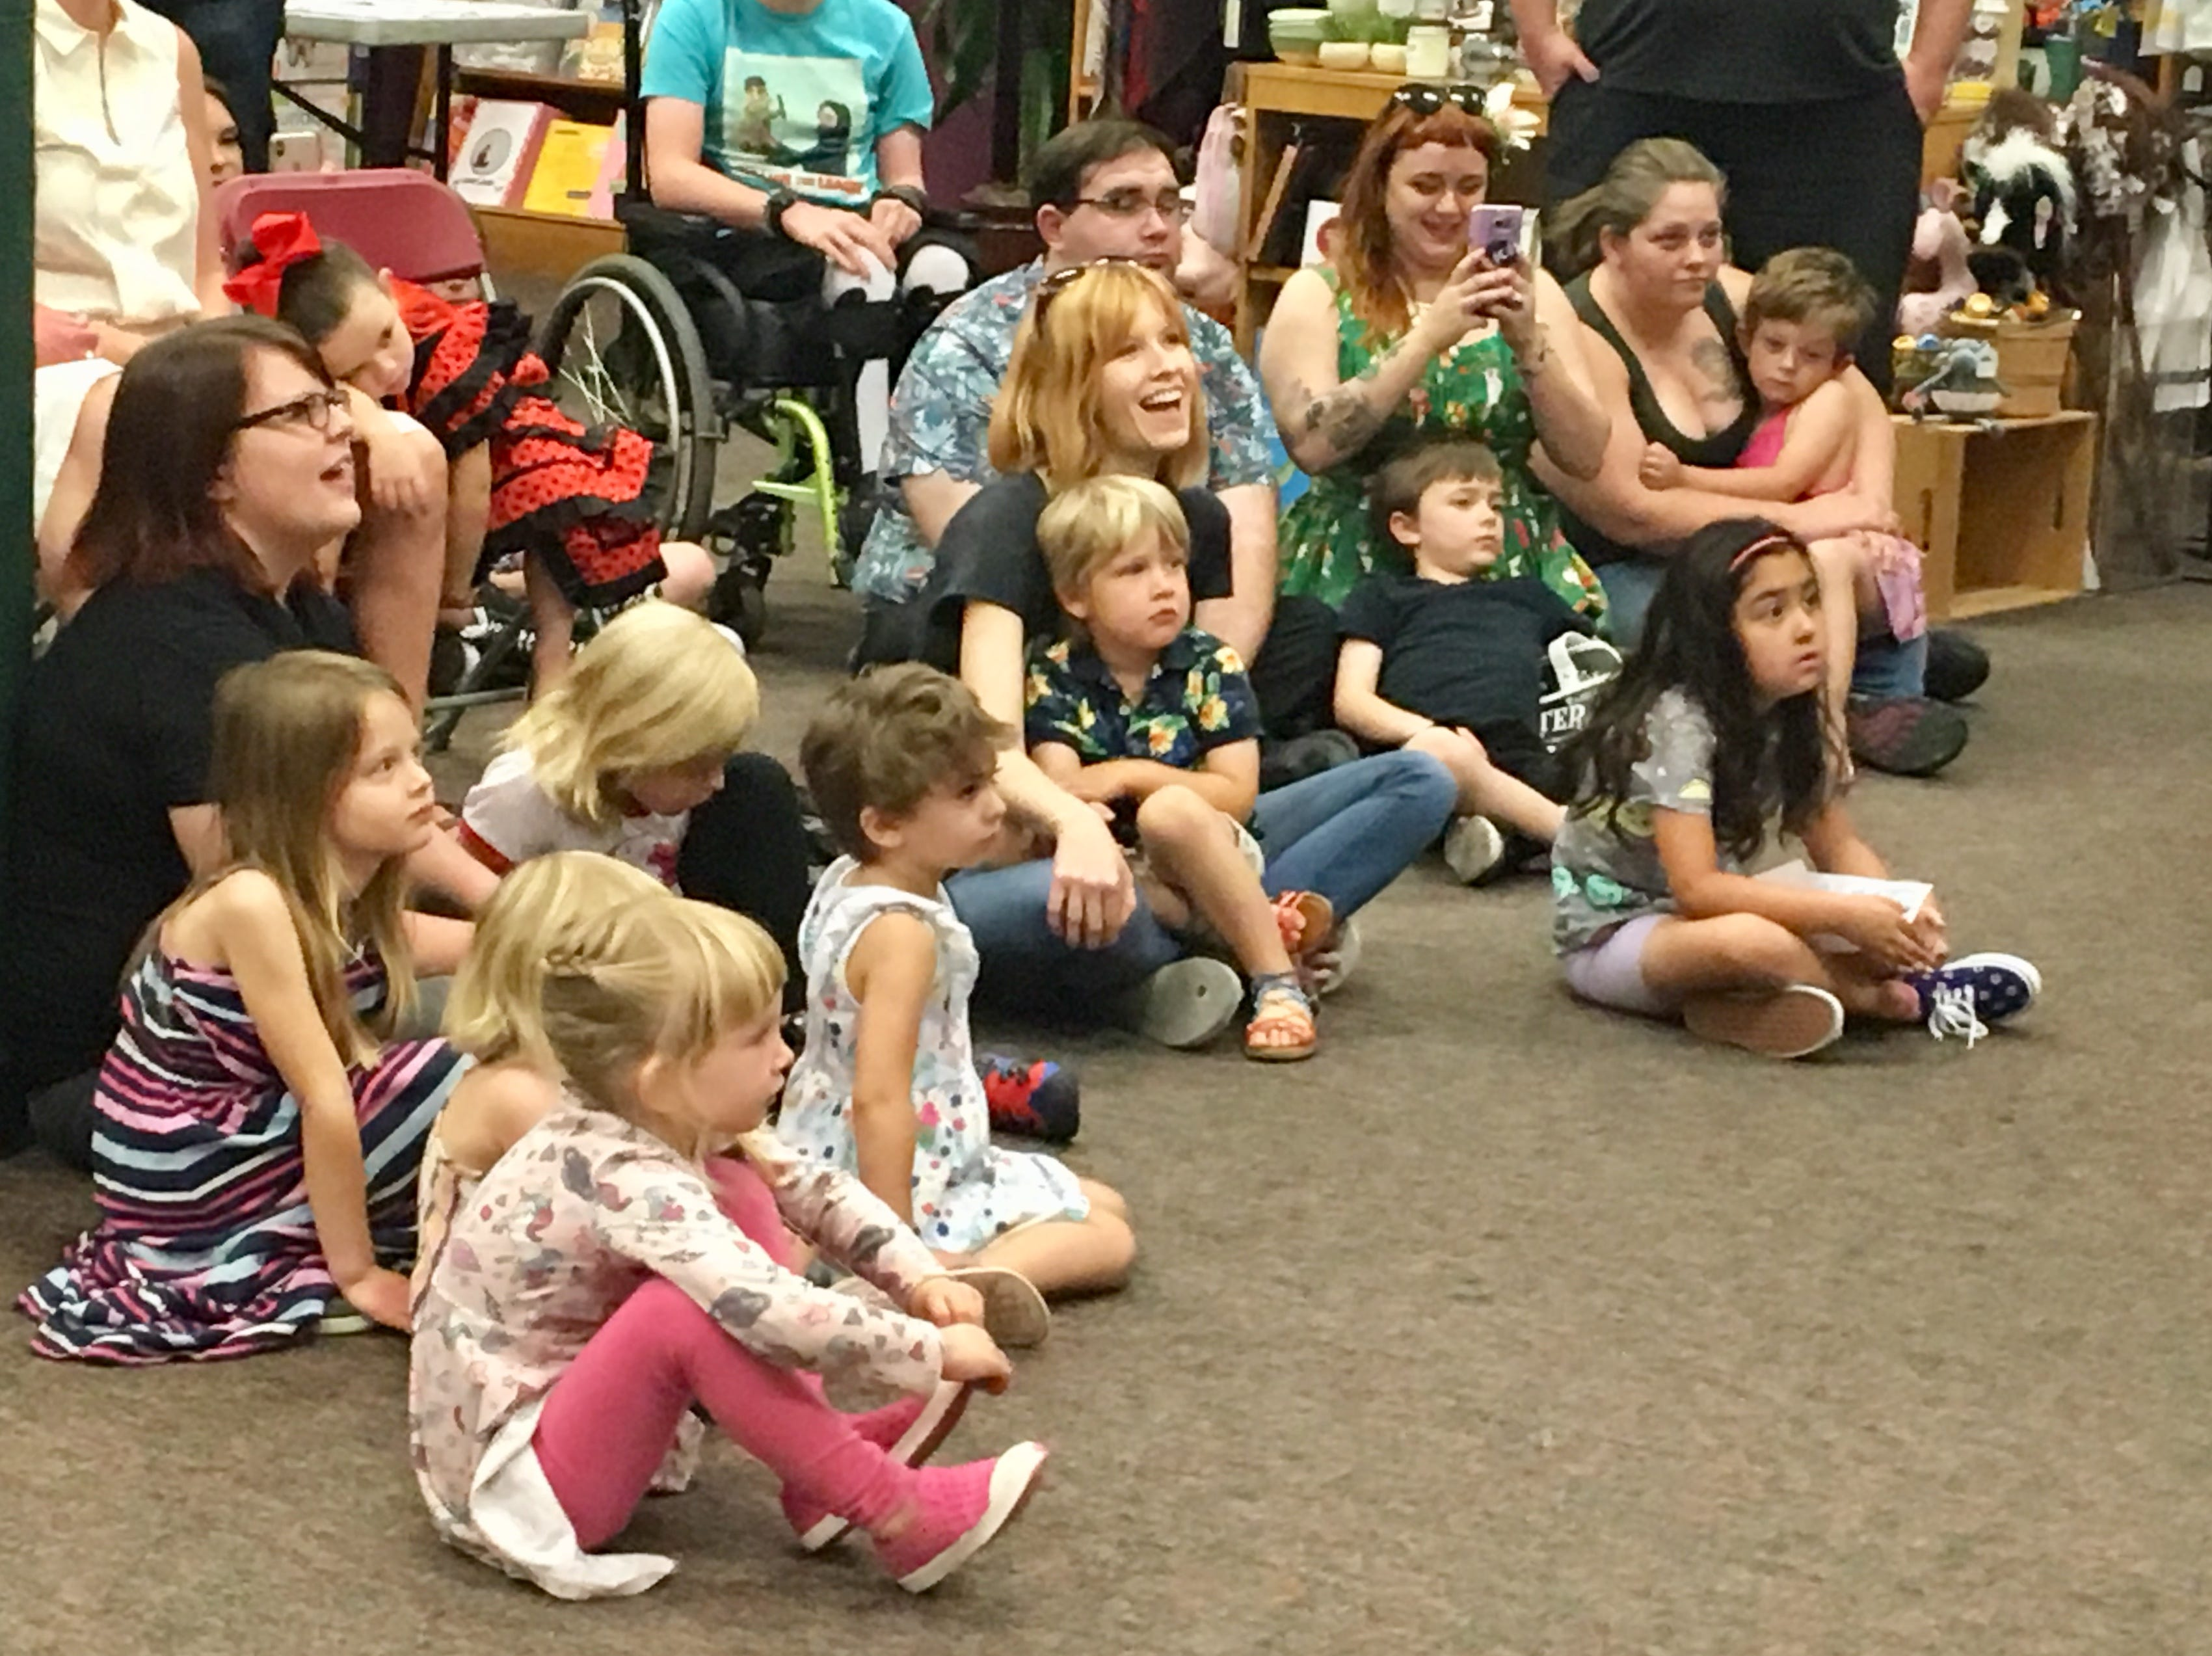 Molly Crum with son Seth, 3, on her lap listen to a story at Drag Queen Storytime at Changing Hands Bookstore in Tempe.